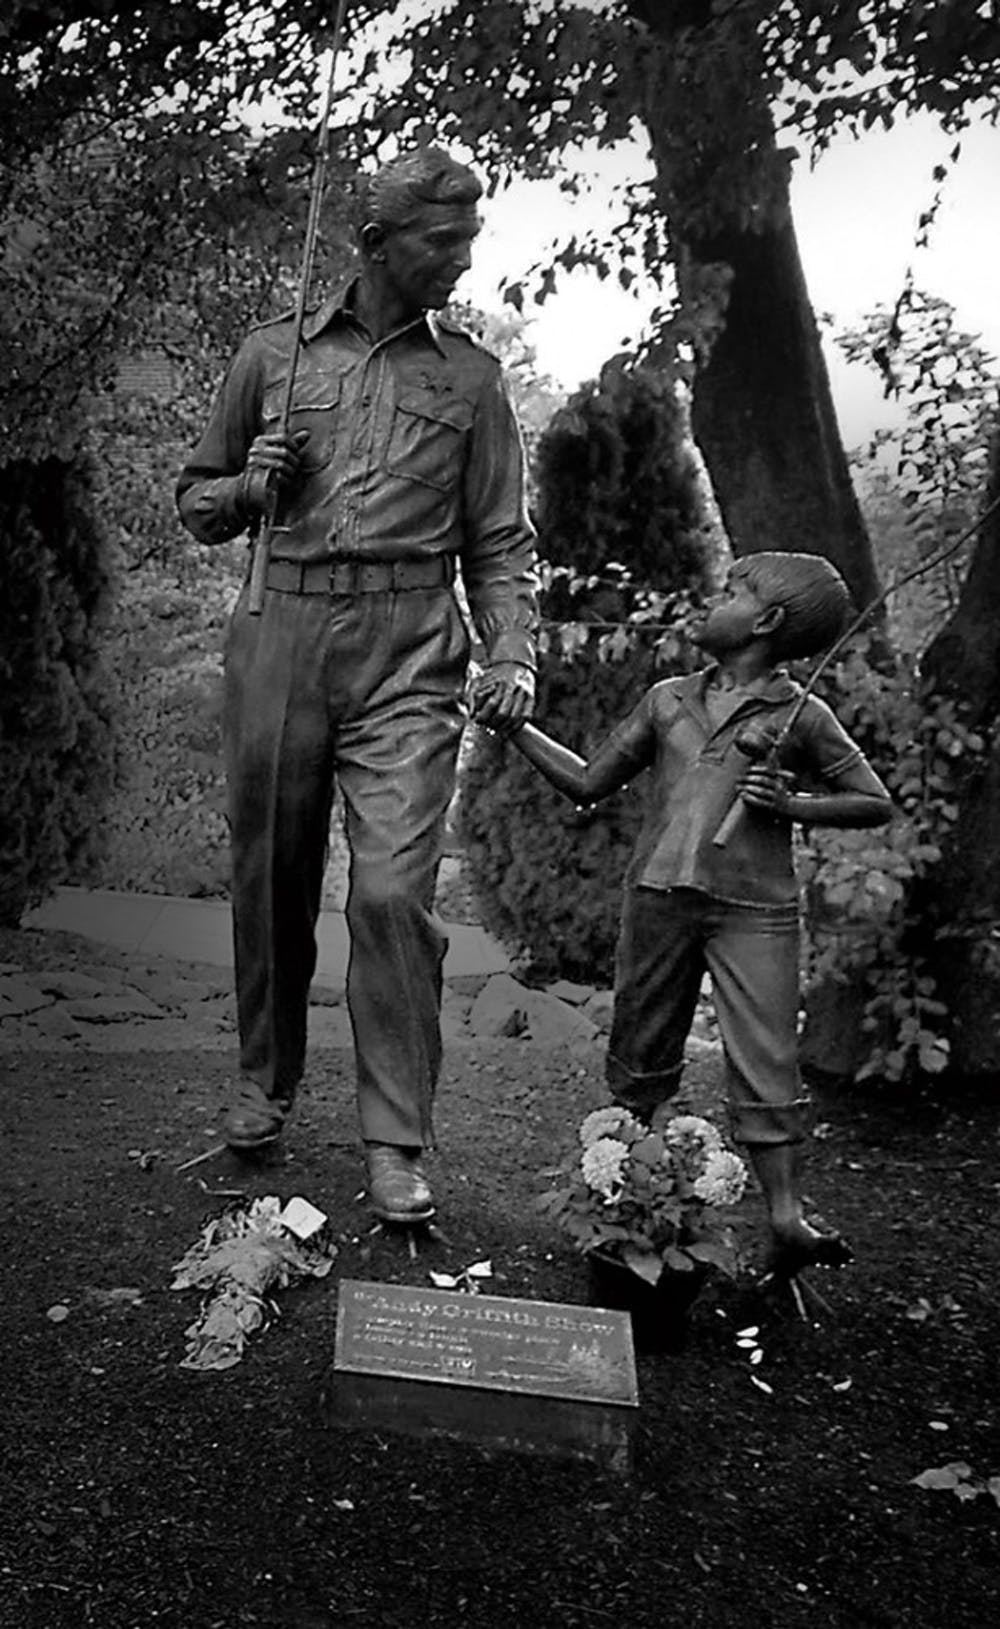 """Actress Betty Lynn, who played Thelma Lou on """"The Andy Griffith Show"""", pays her respects at the Andy Griffith statue in Mt. Airy, North Carolina, on Tuesday, July 3, 2012. Griffith, a Mt. Airy native, died Tuesday at age 86 at his home in Manteo, North Carolina. (Todd Sumlin/Charlotte Observer/MCT)"""